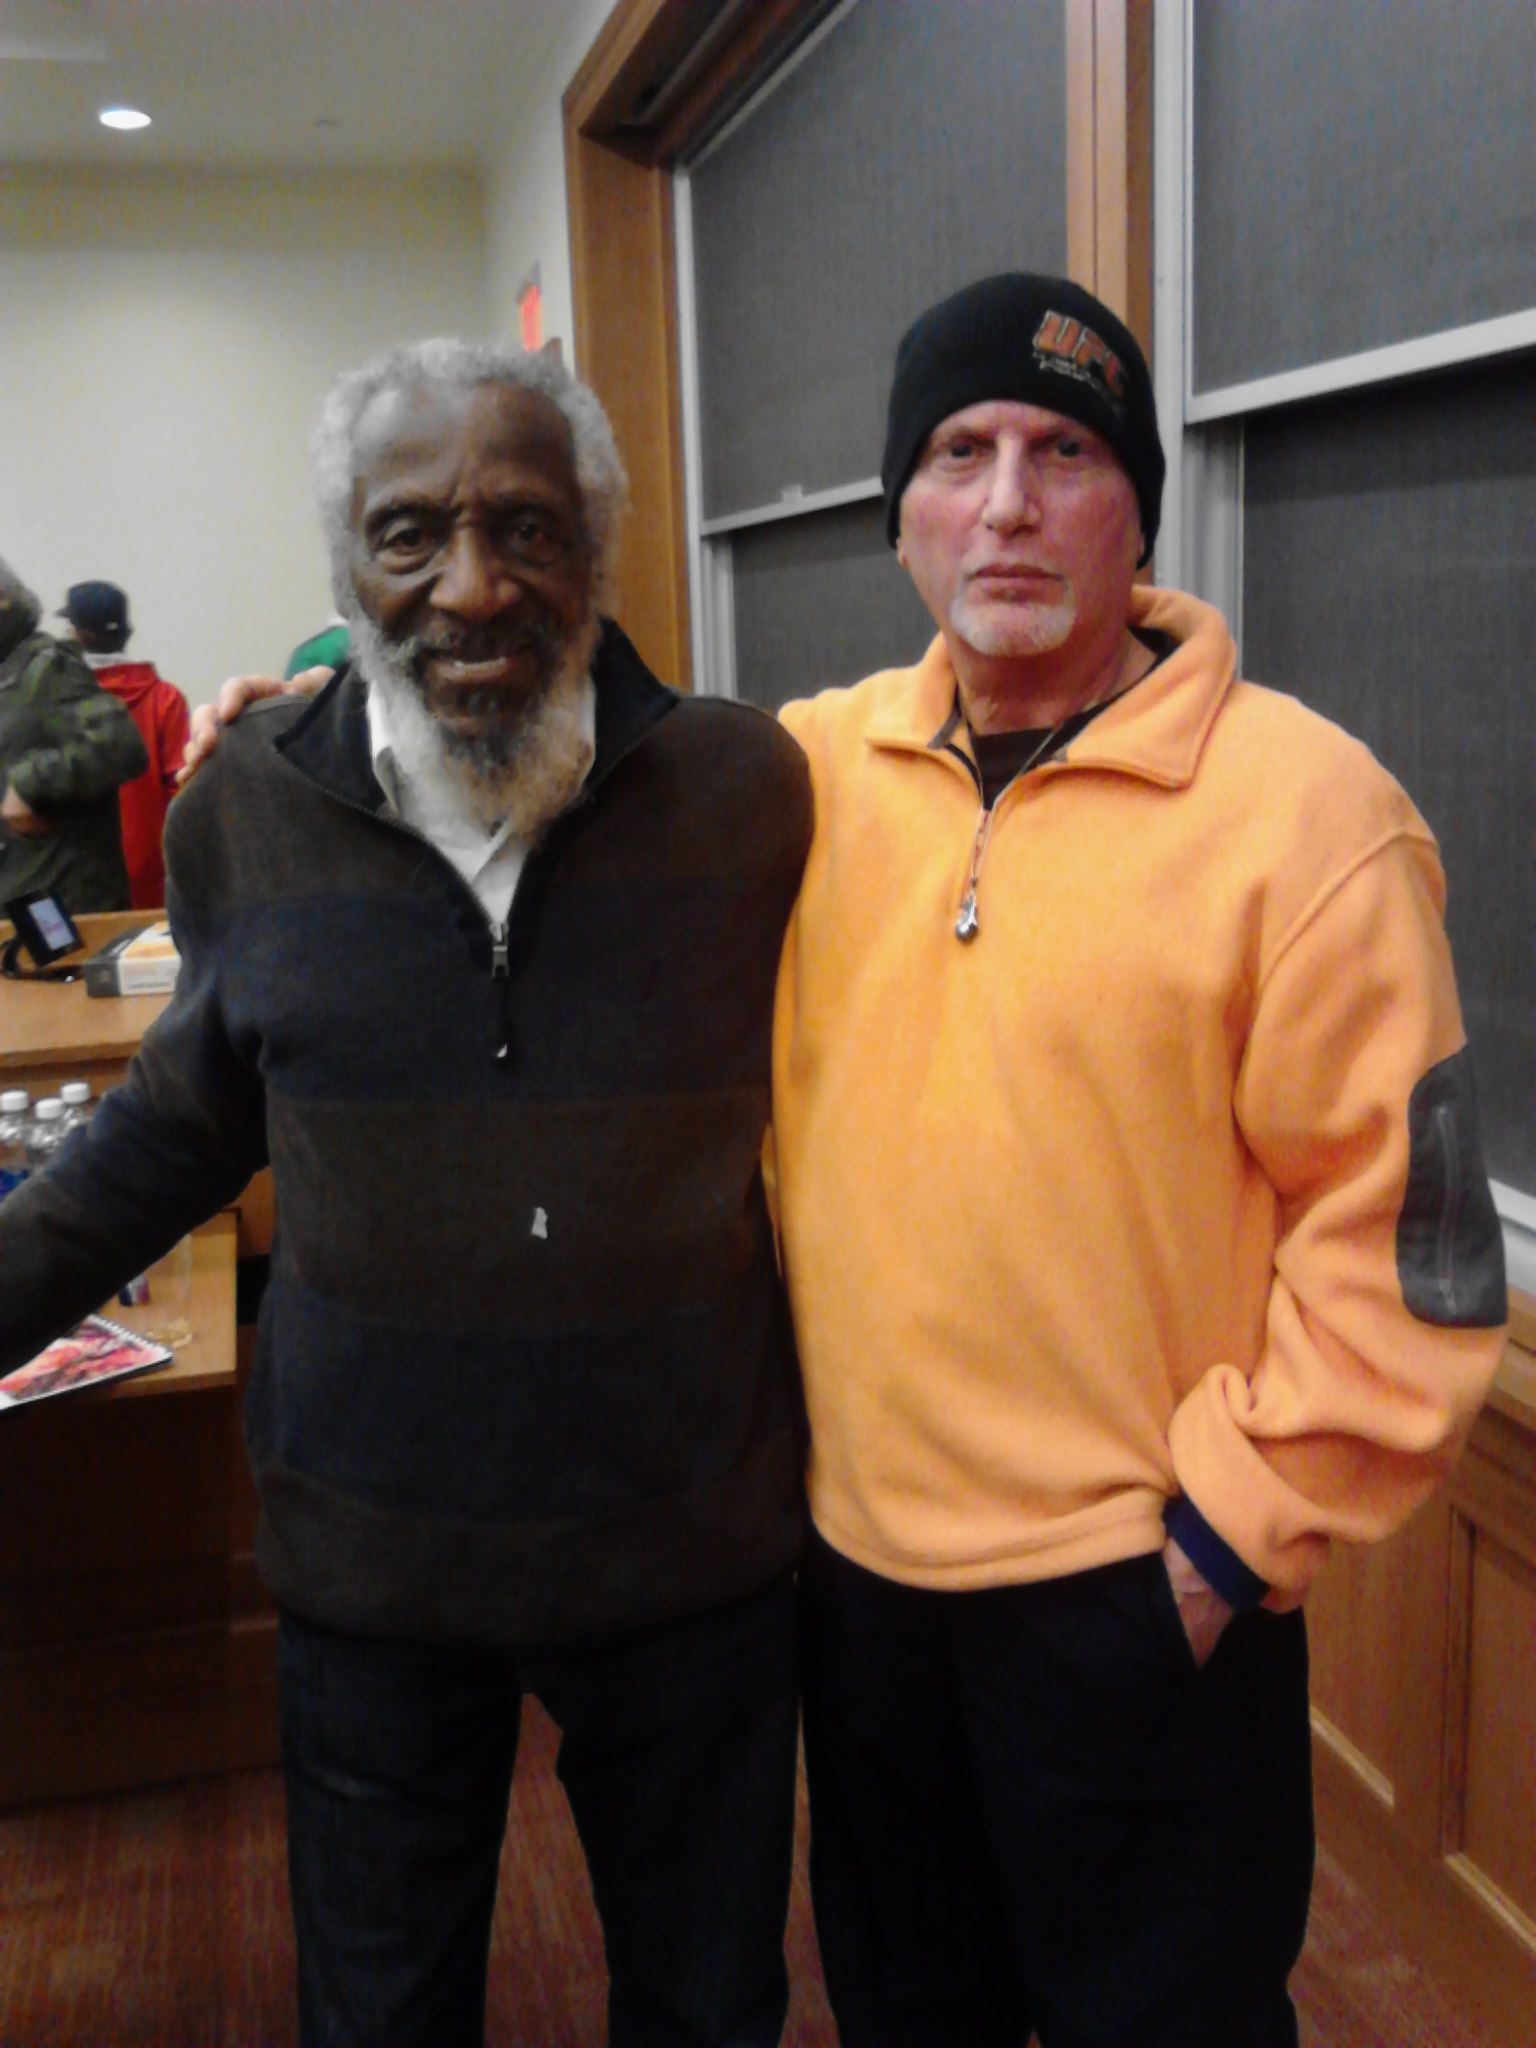 DICK GREGORY FEB 7, 2013.jpg